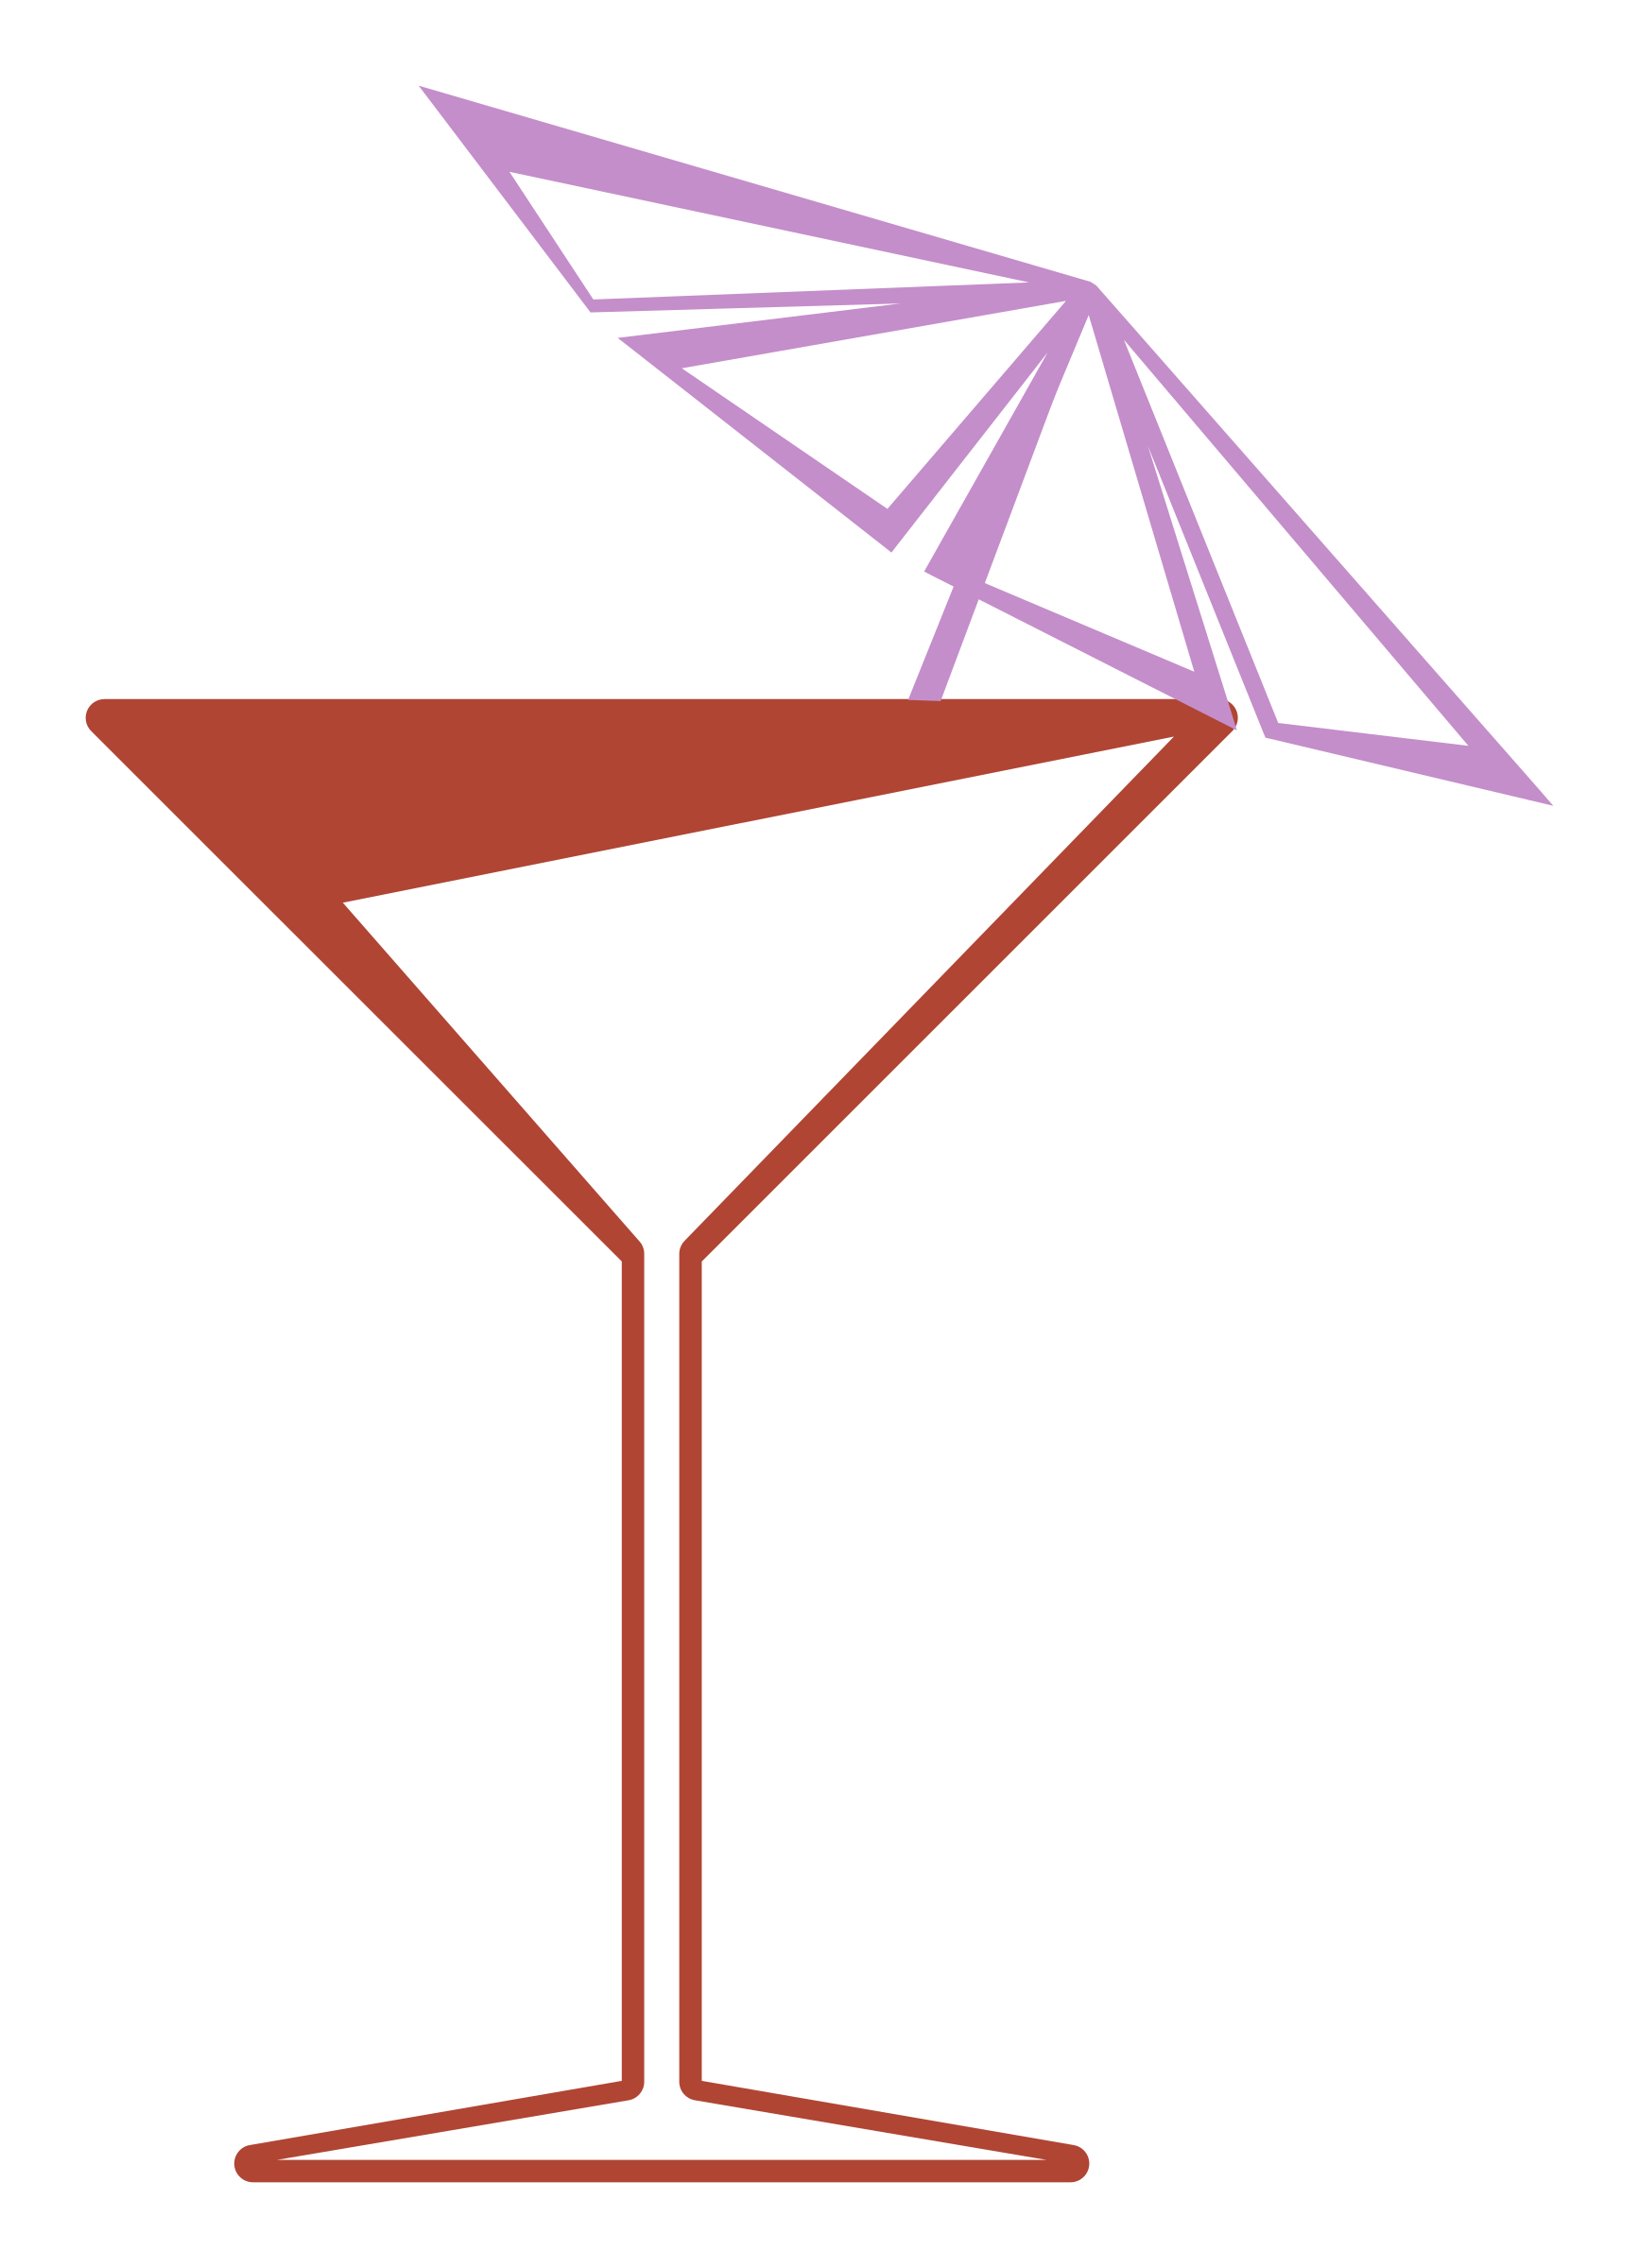 Martini glass by Basurero